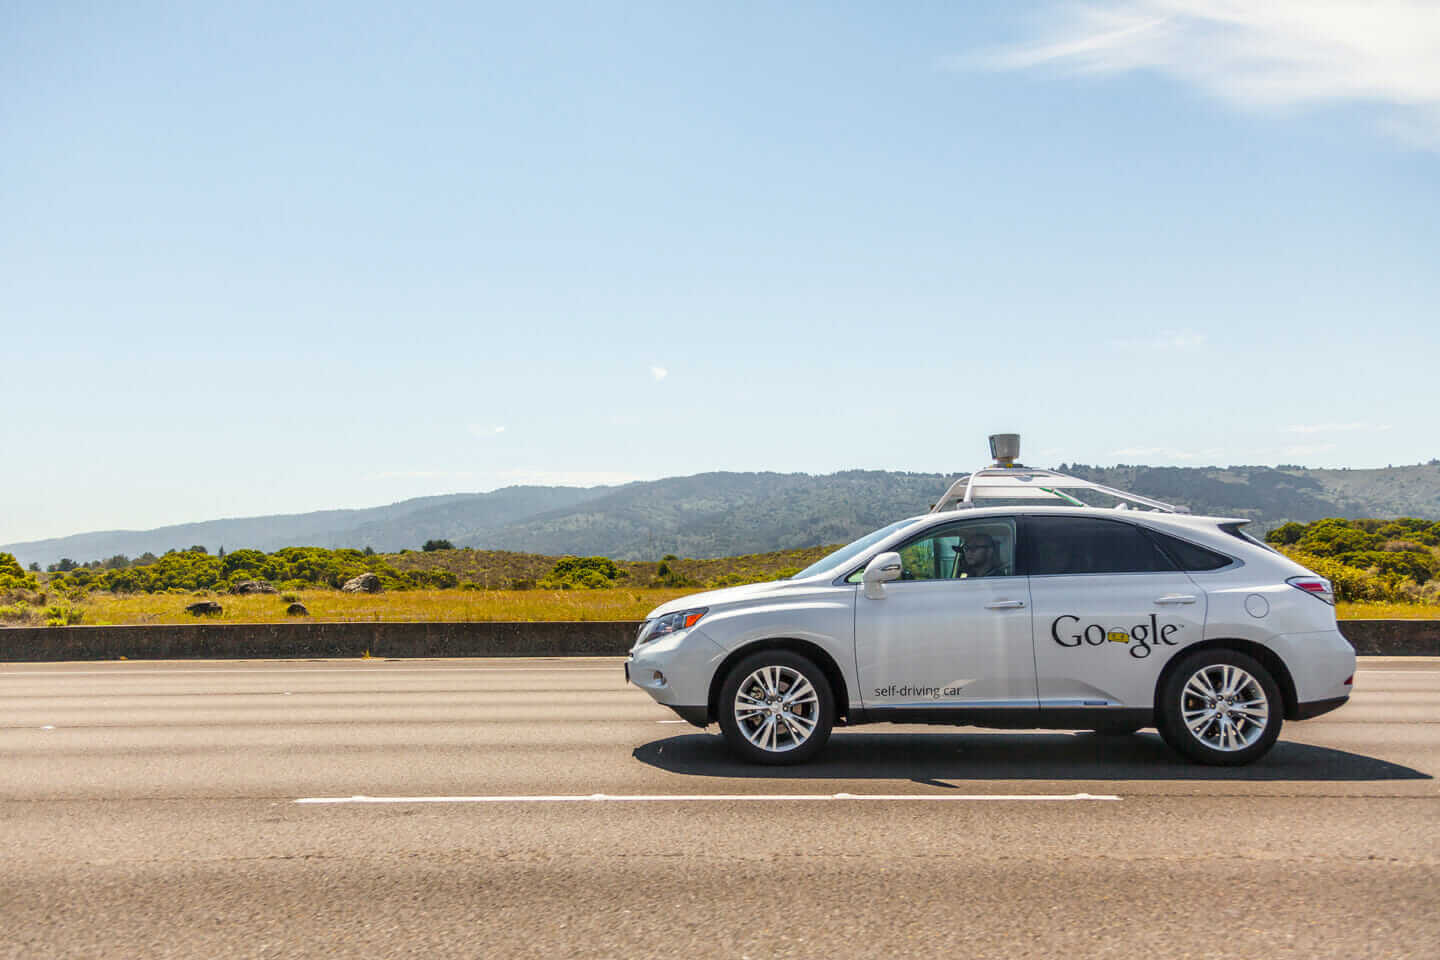 smart cities Google self-driving car